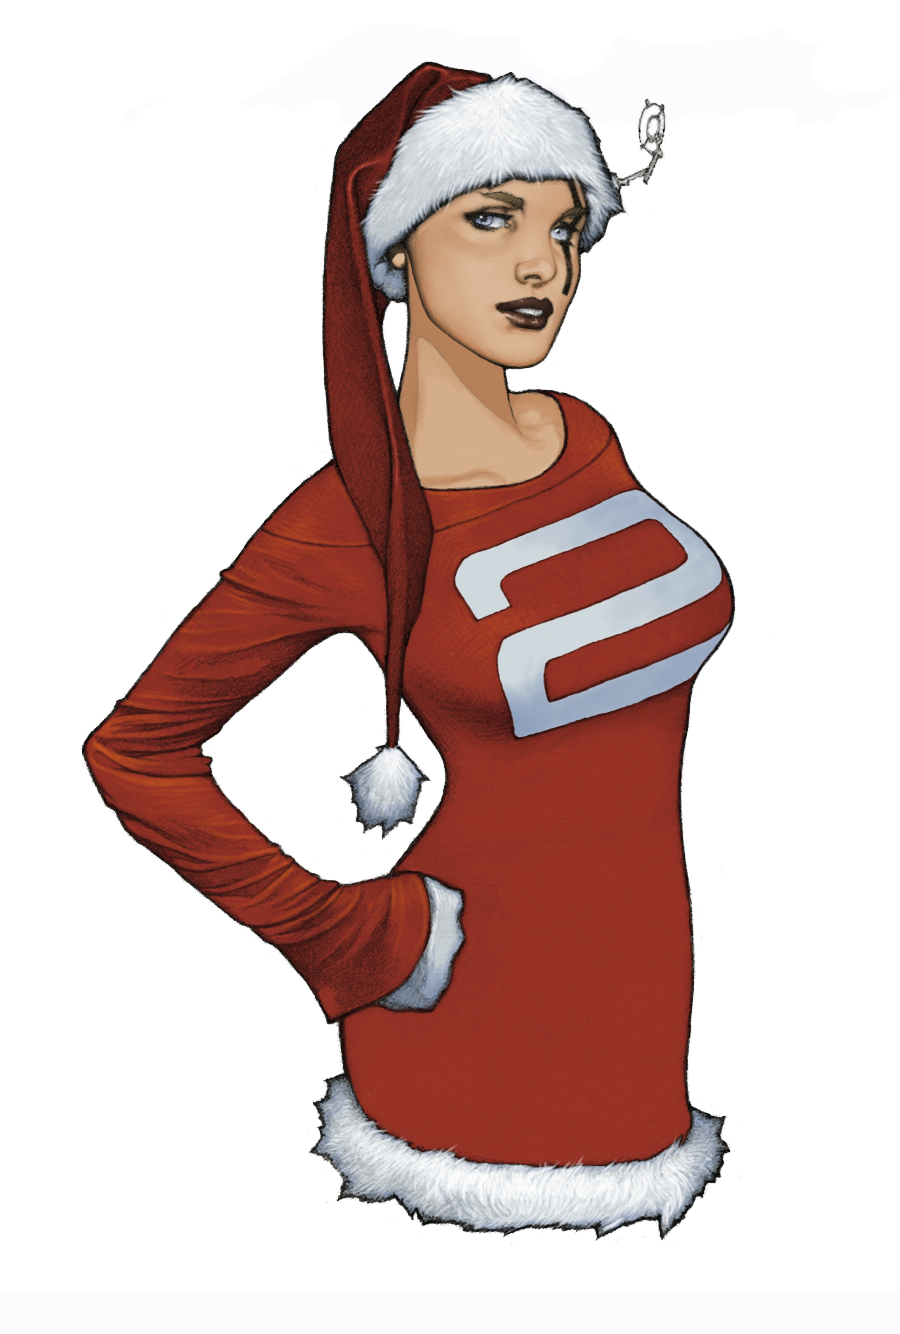 SpacegirlSanta.jpg